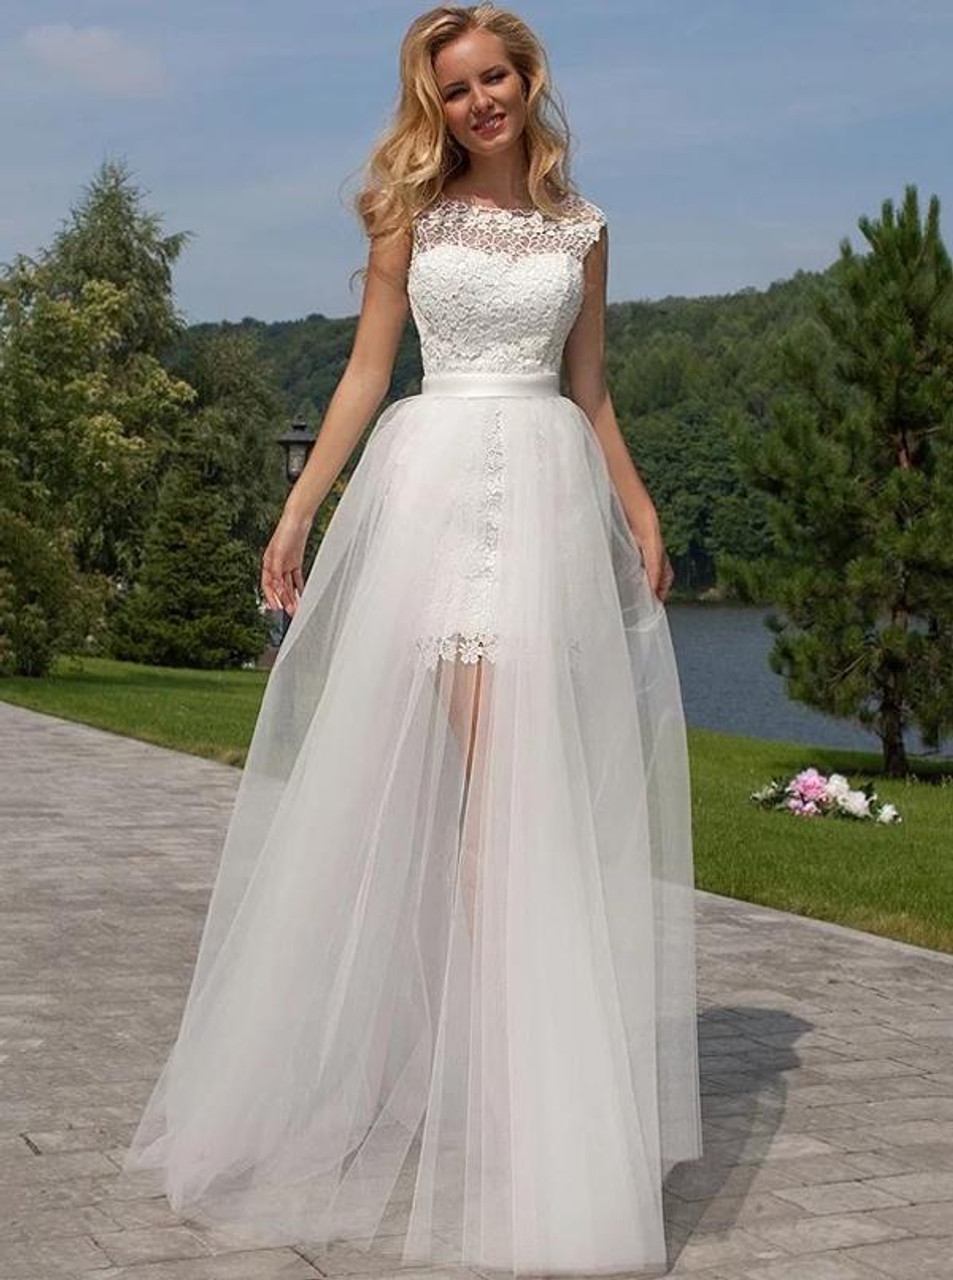 Lace Short Wedding Dress With Detachable Tulle Skirtfull Length Beach Wedding Dress11310